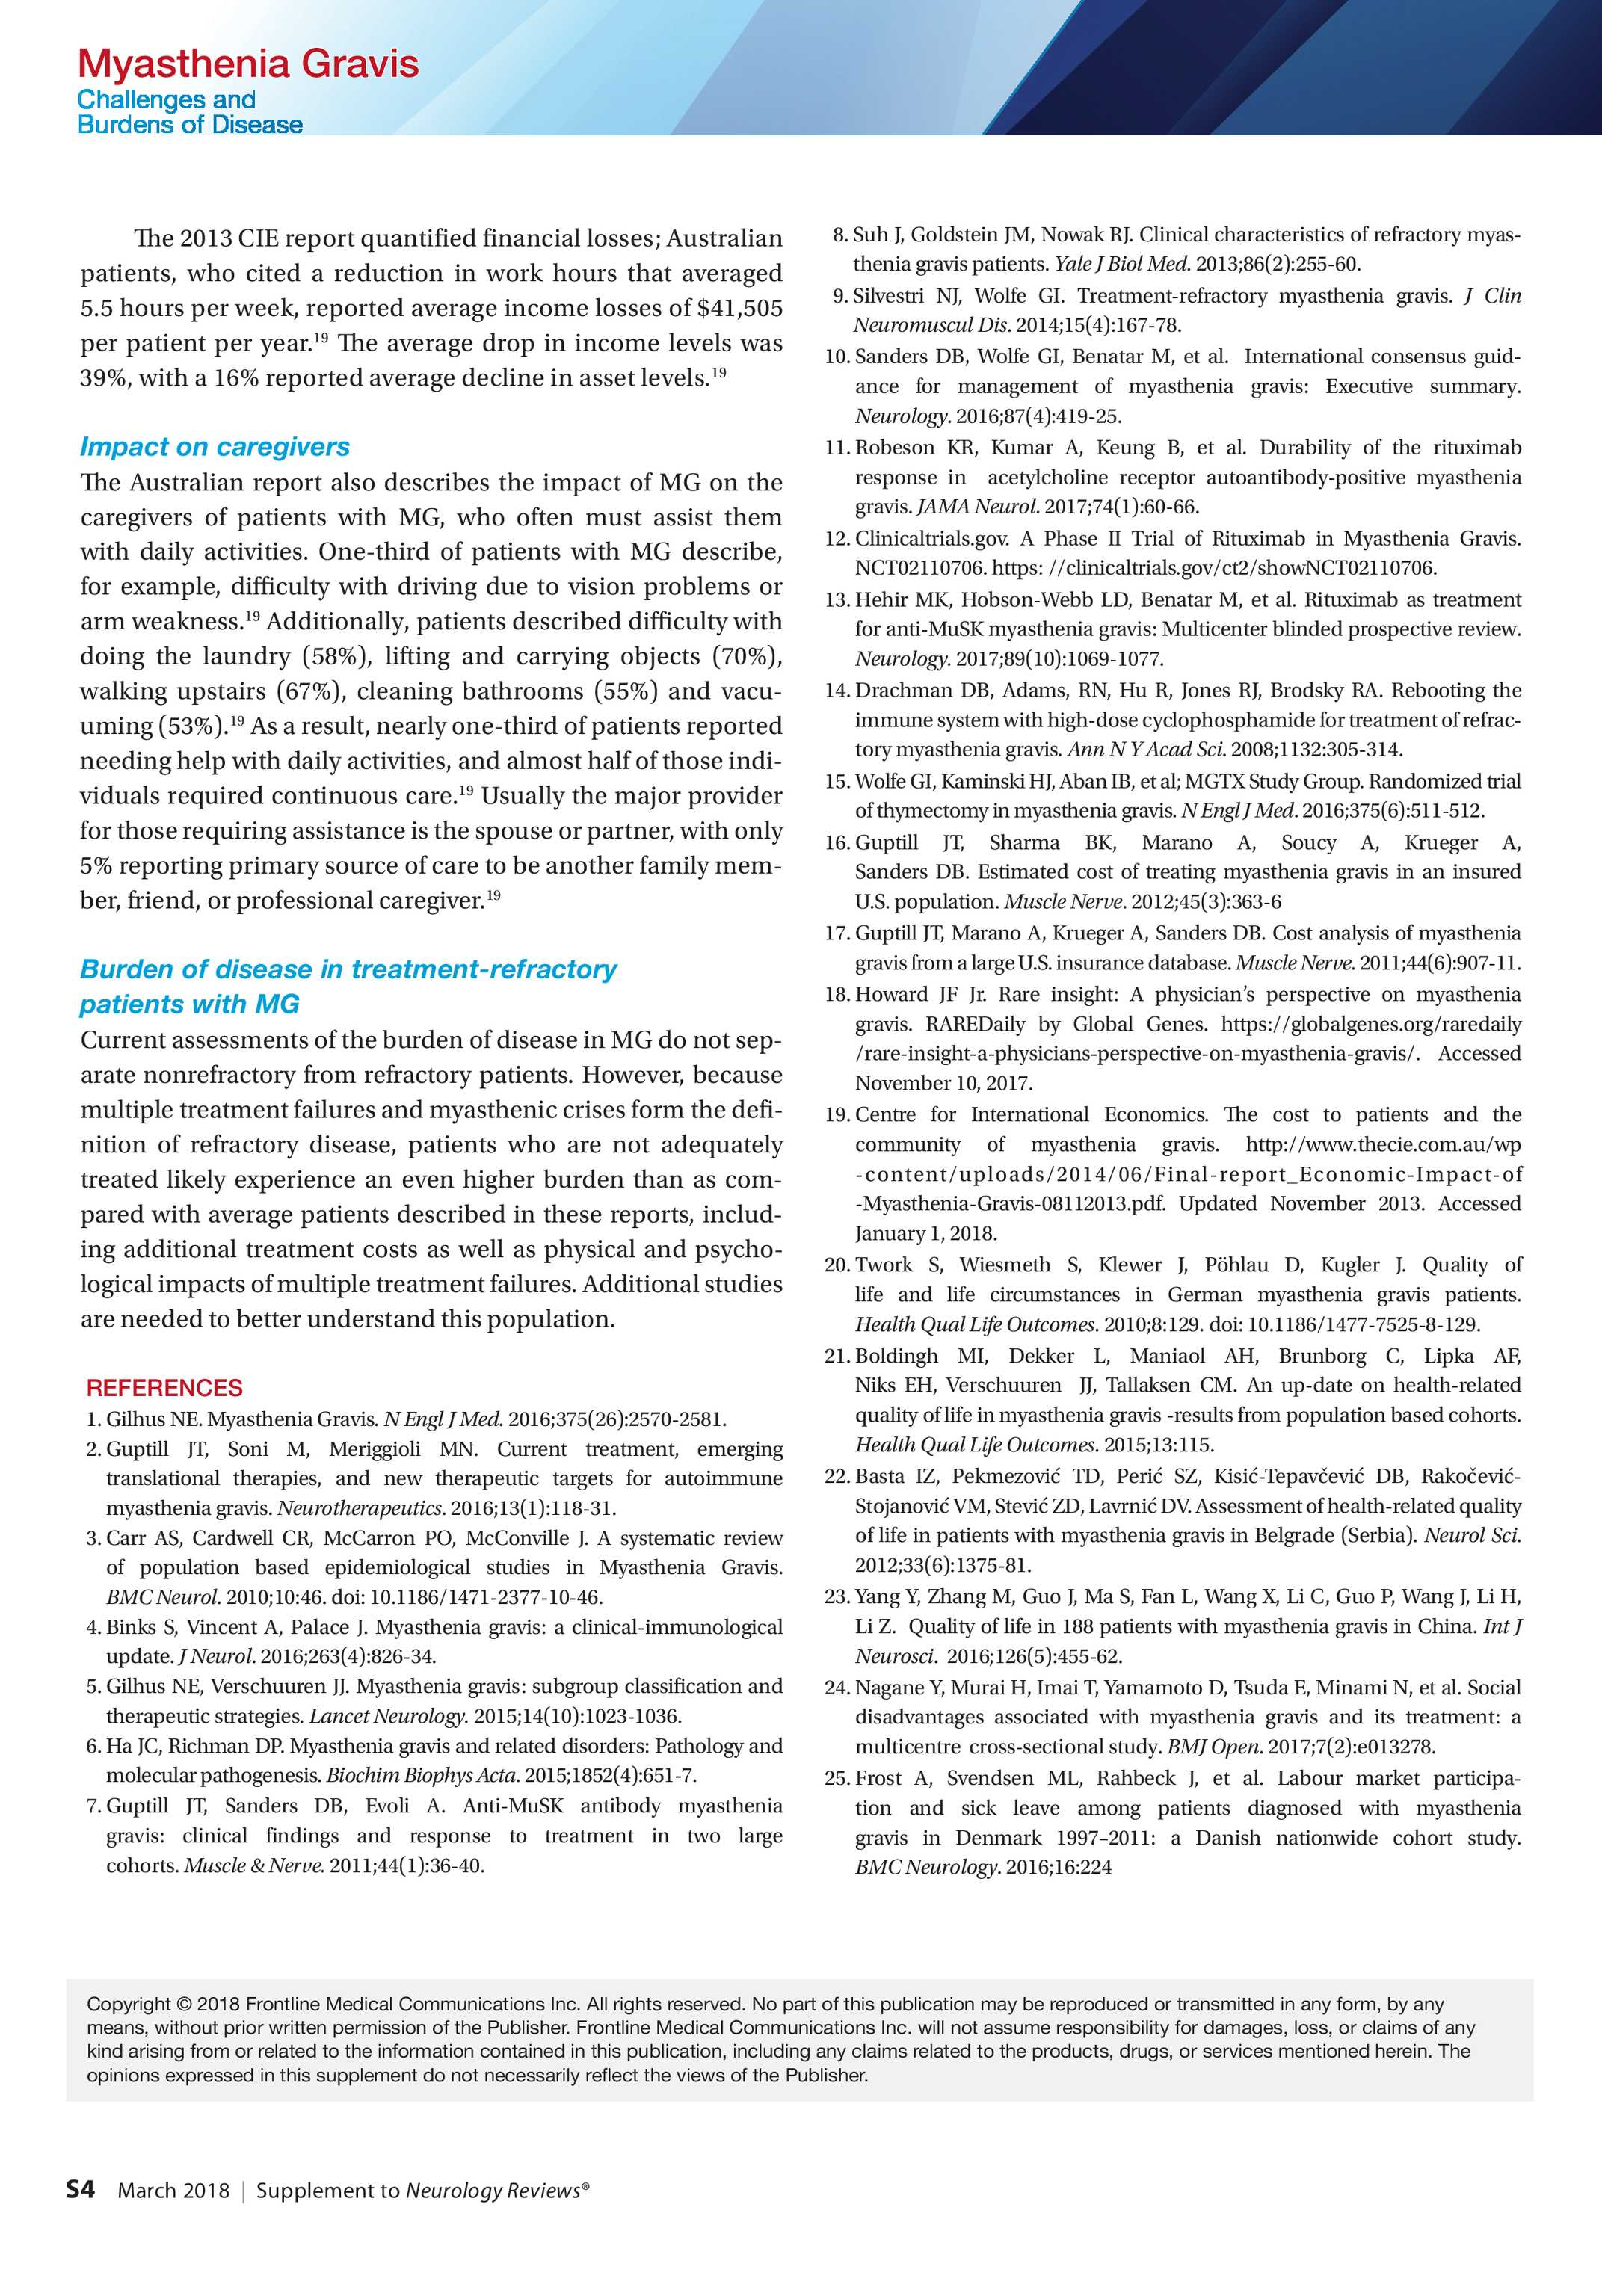 Neurology Reviews - NORD Supplement 0318 - page 49